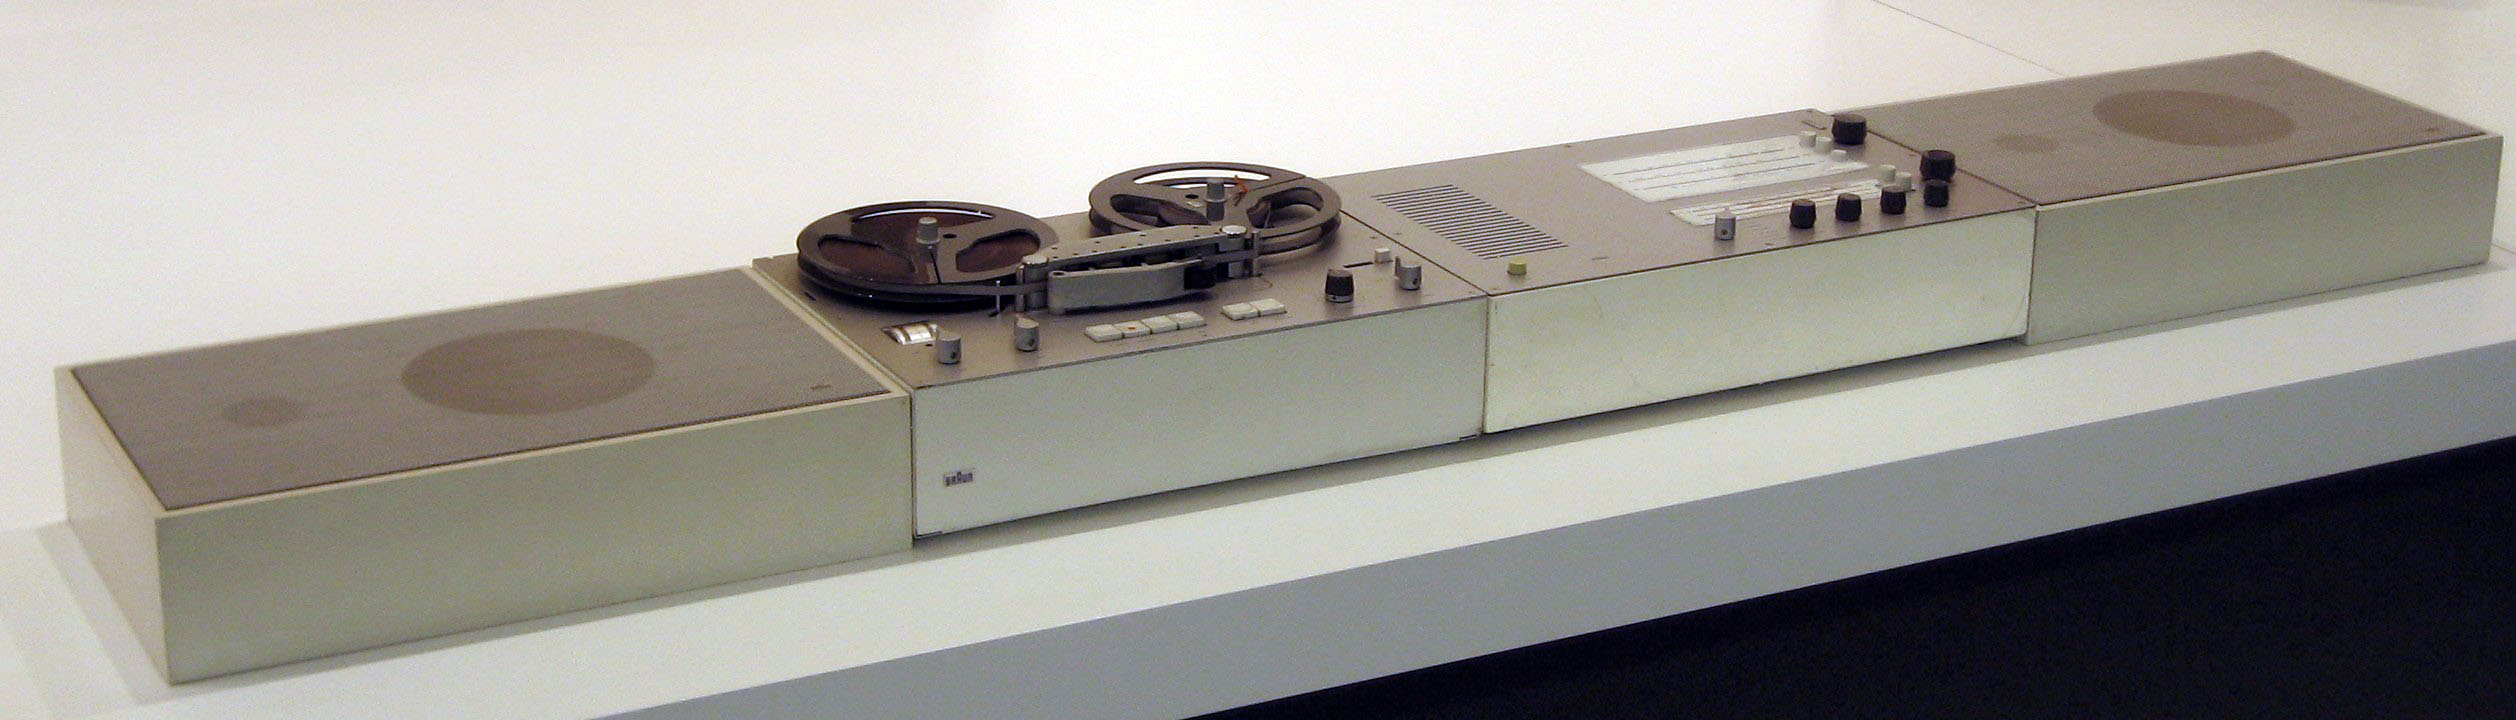 Braun TS 45, TG 60, L 450 (Germany, 1964/1965)